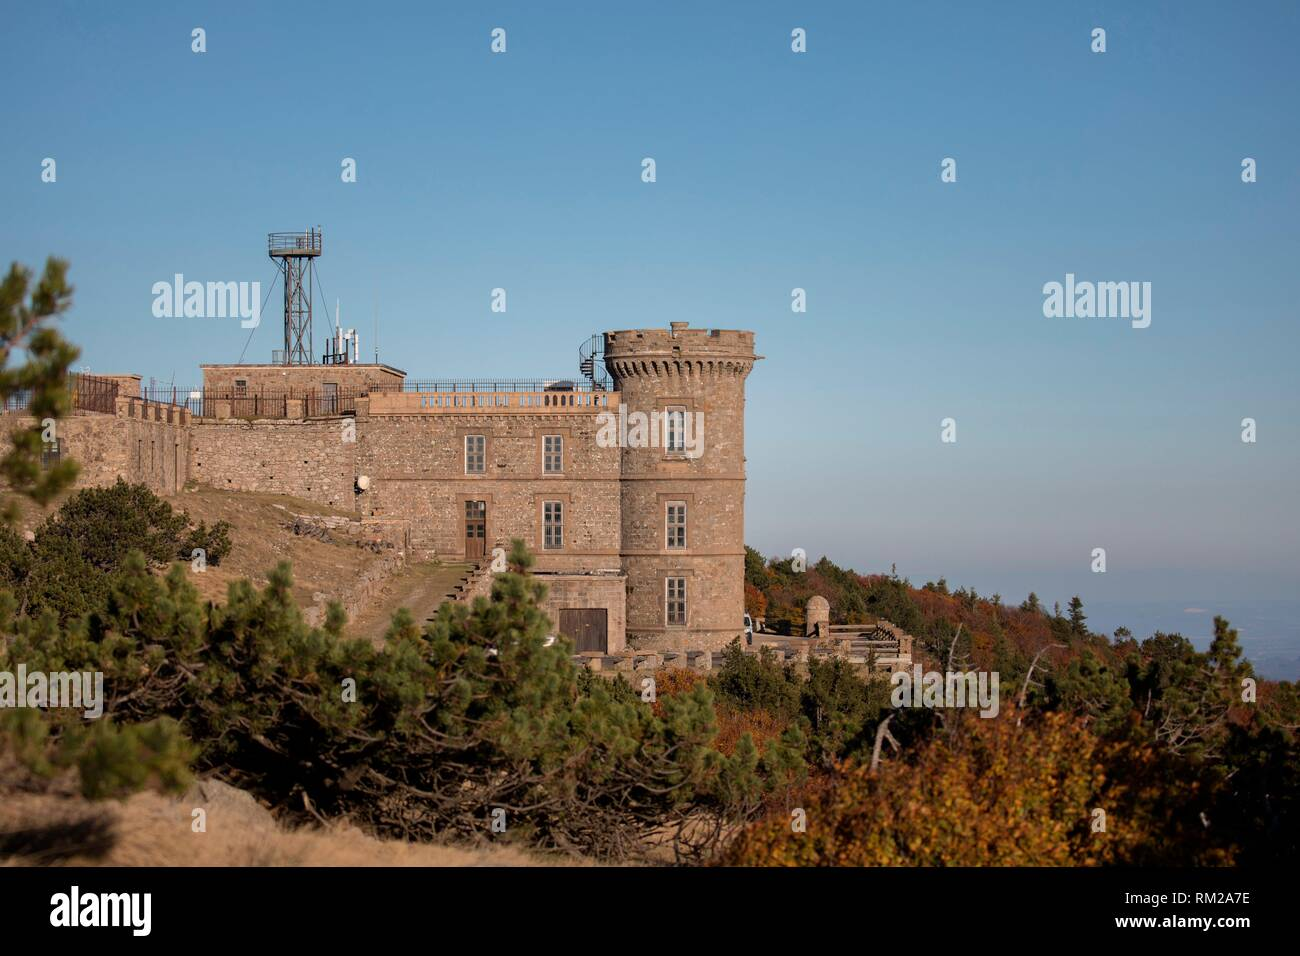 Aigoual mont meteorological observatory. - Stock Image